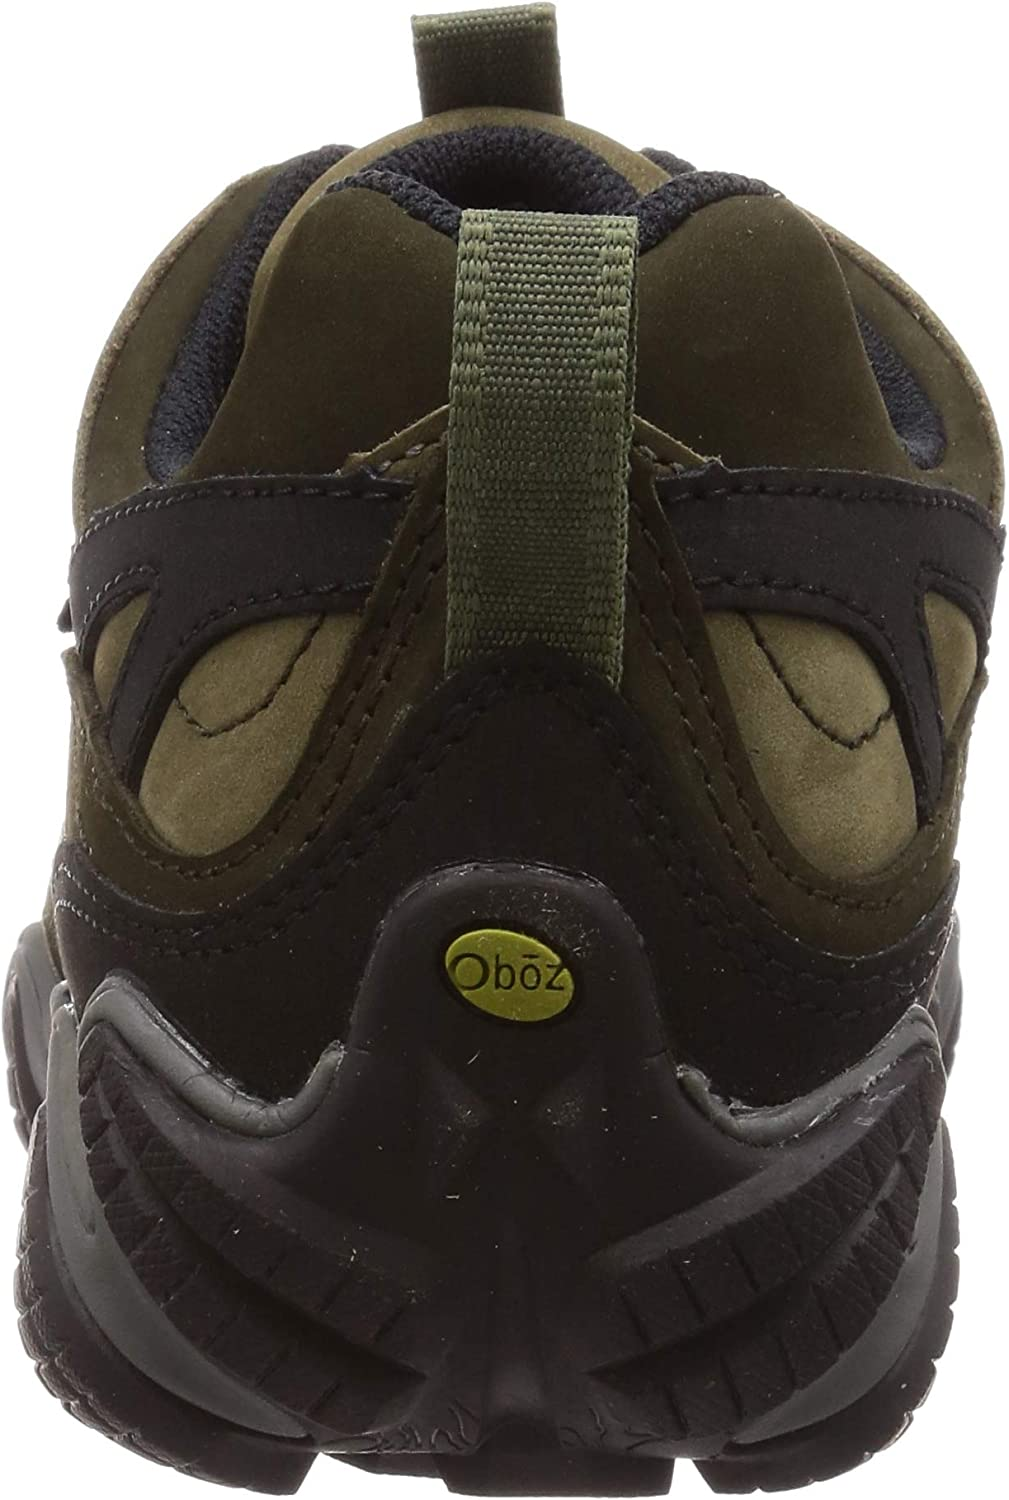 Oboz Firebrand II B-Dry Hiking Shoe Mens Earth 9 Wide